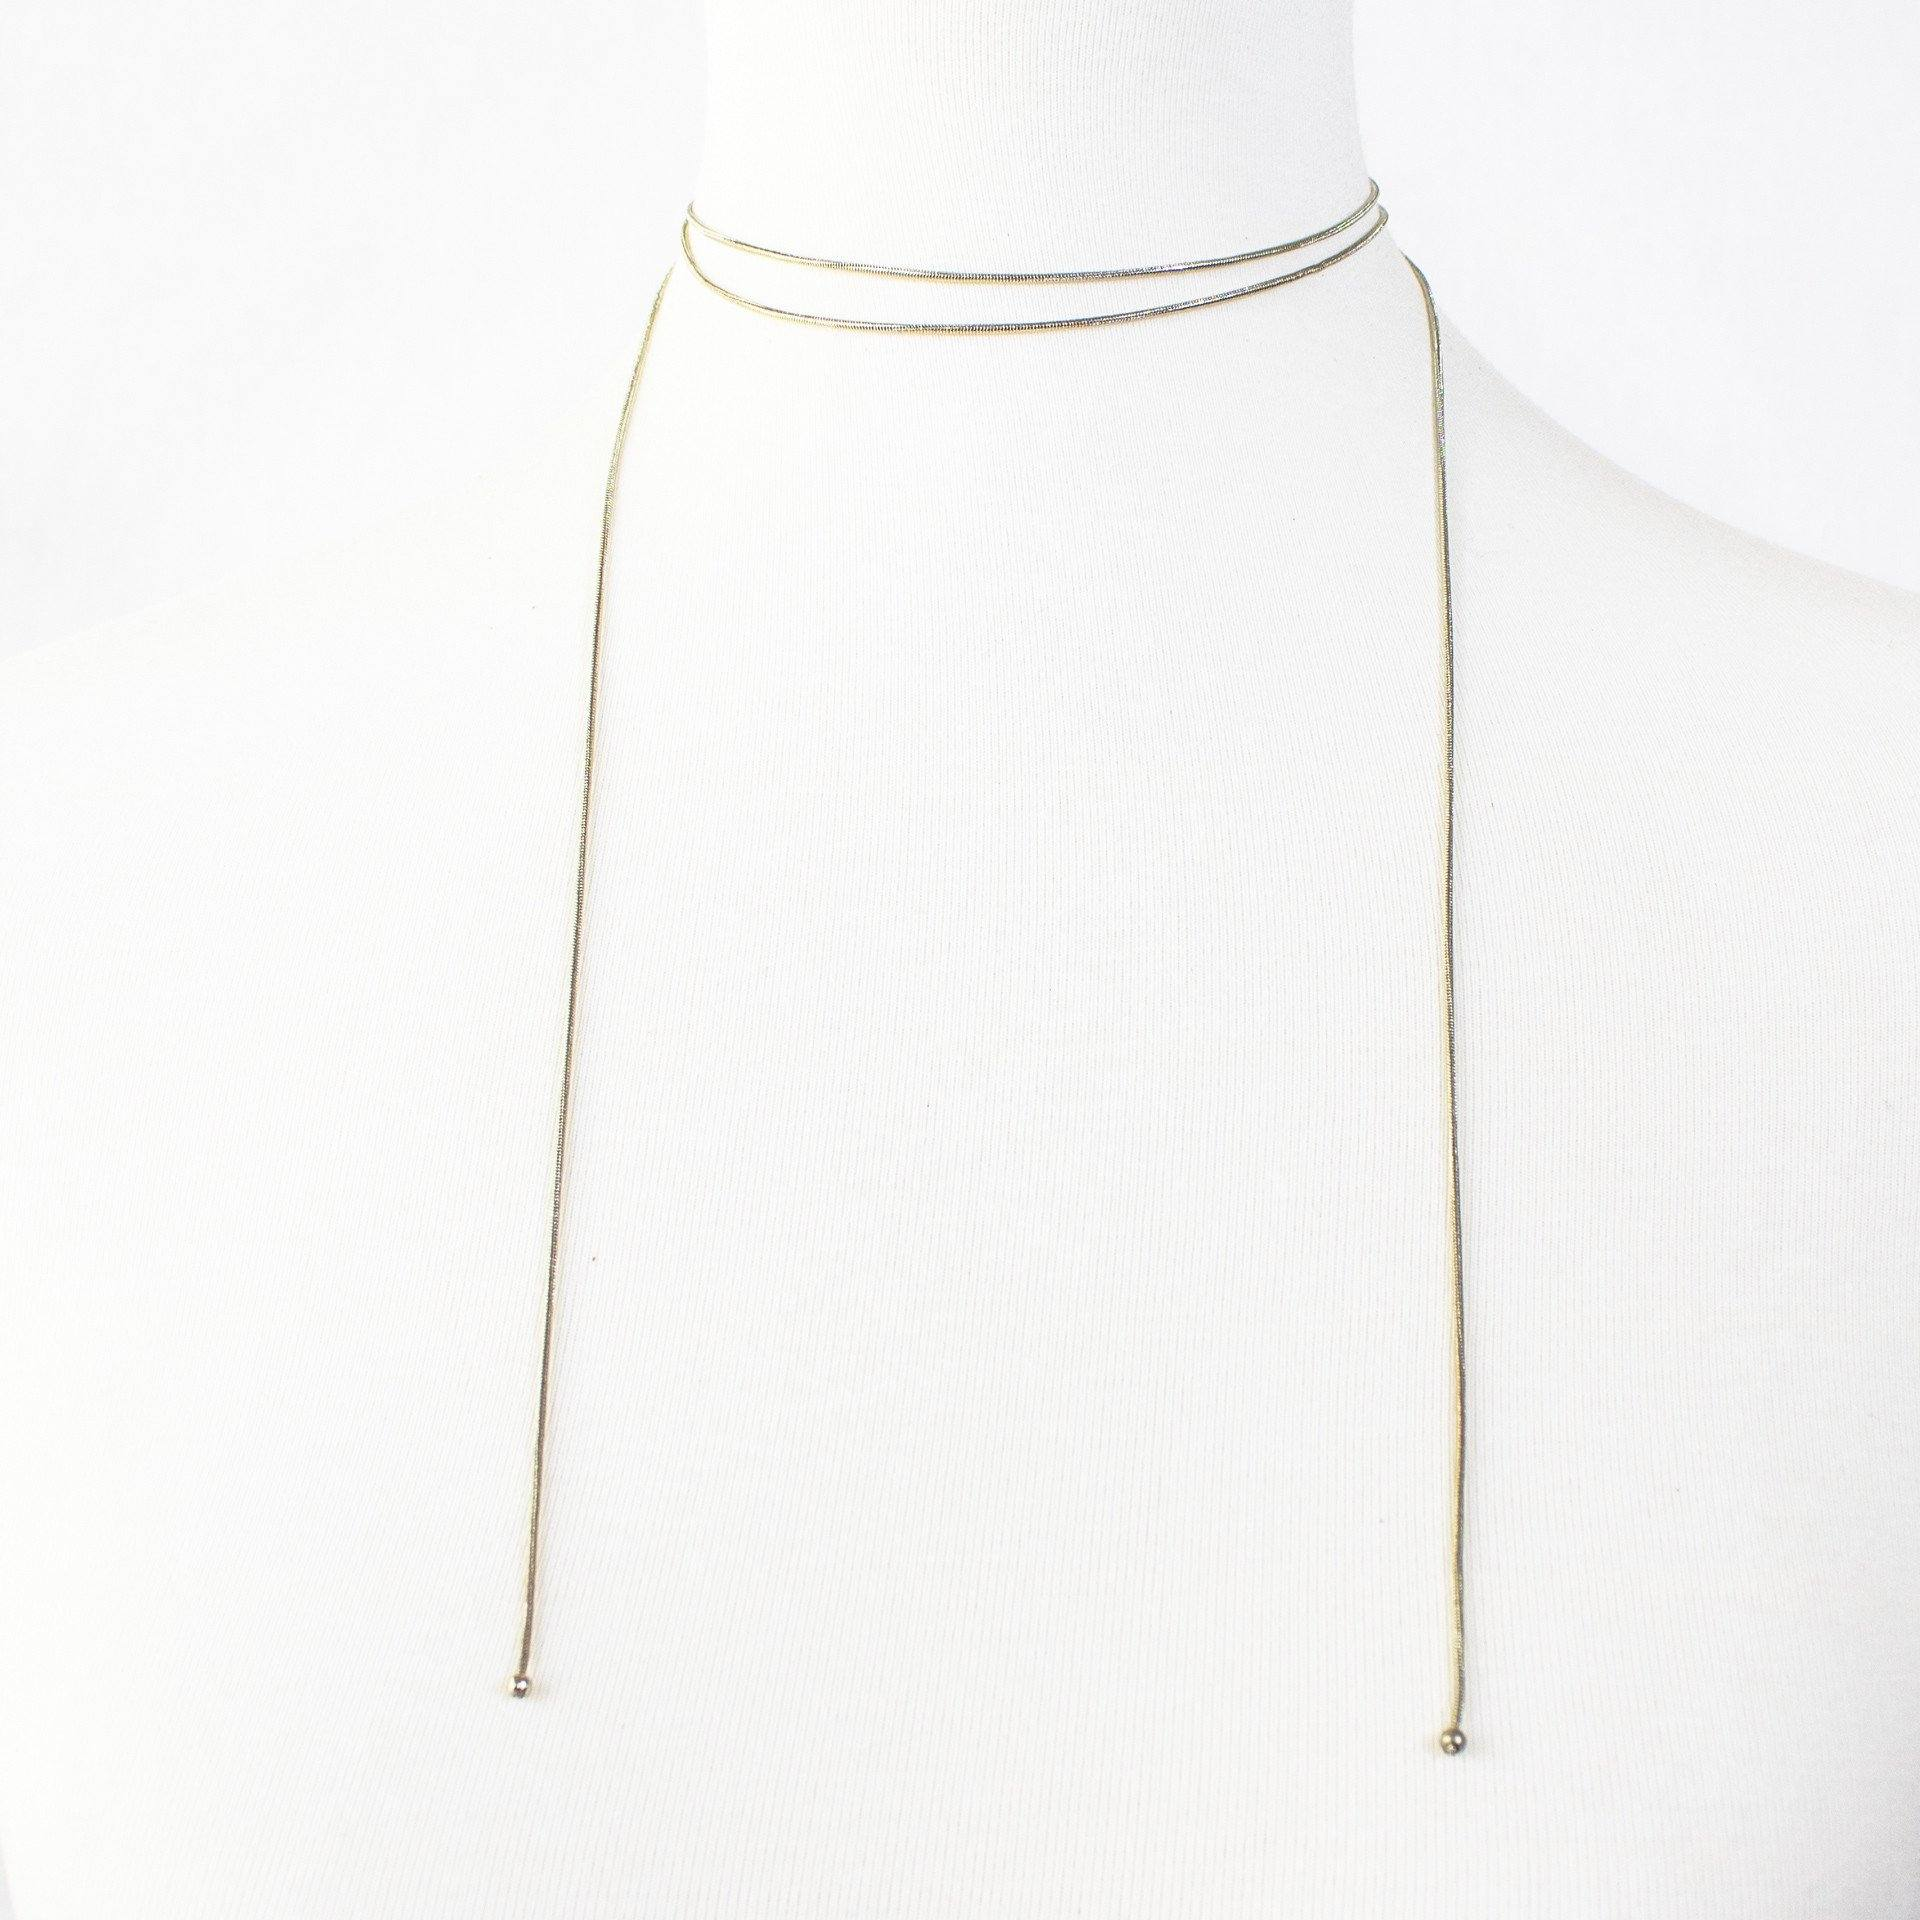 'Adeline' Choker Necklace - Arlo and Arrows